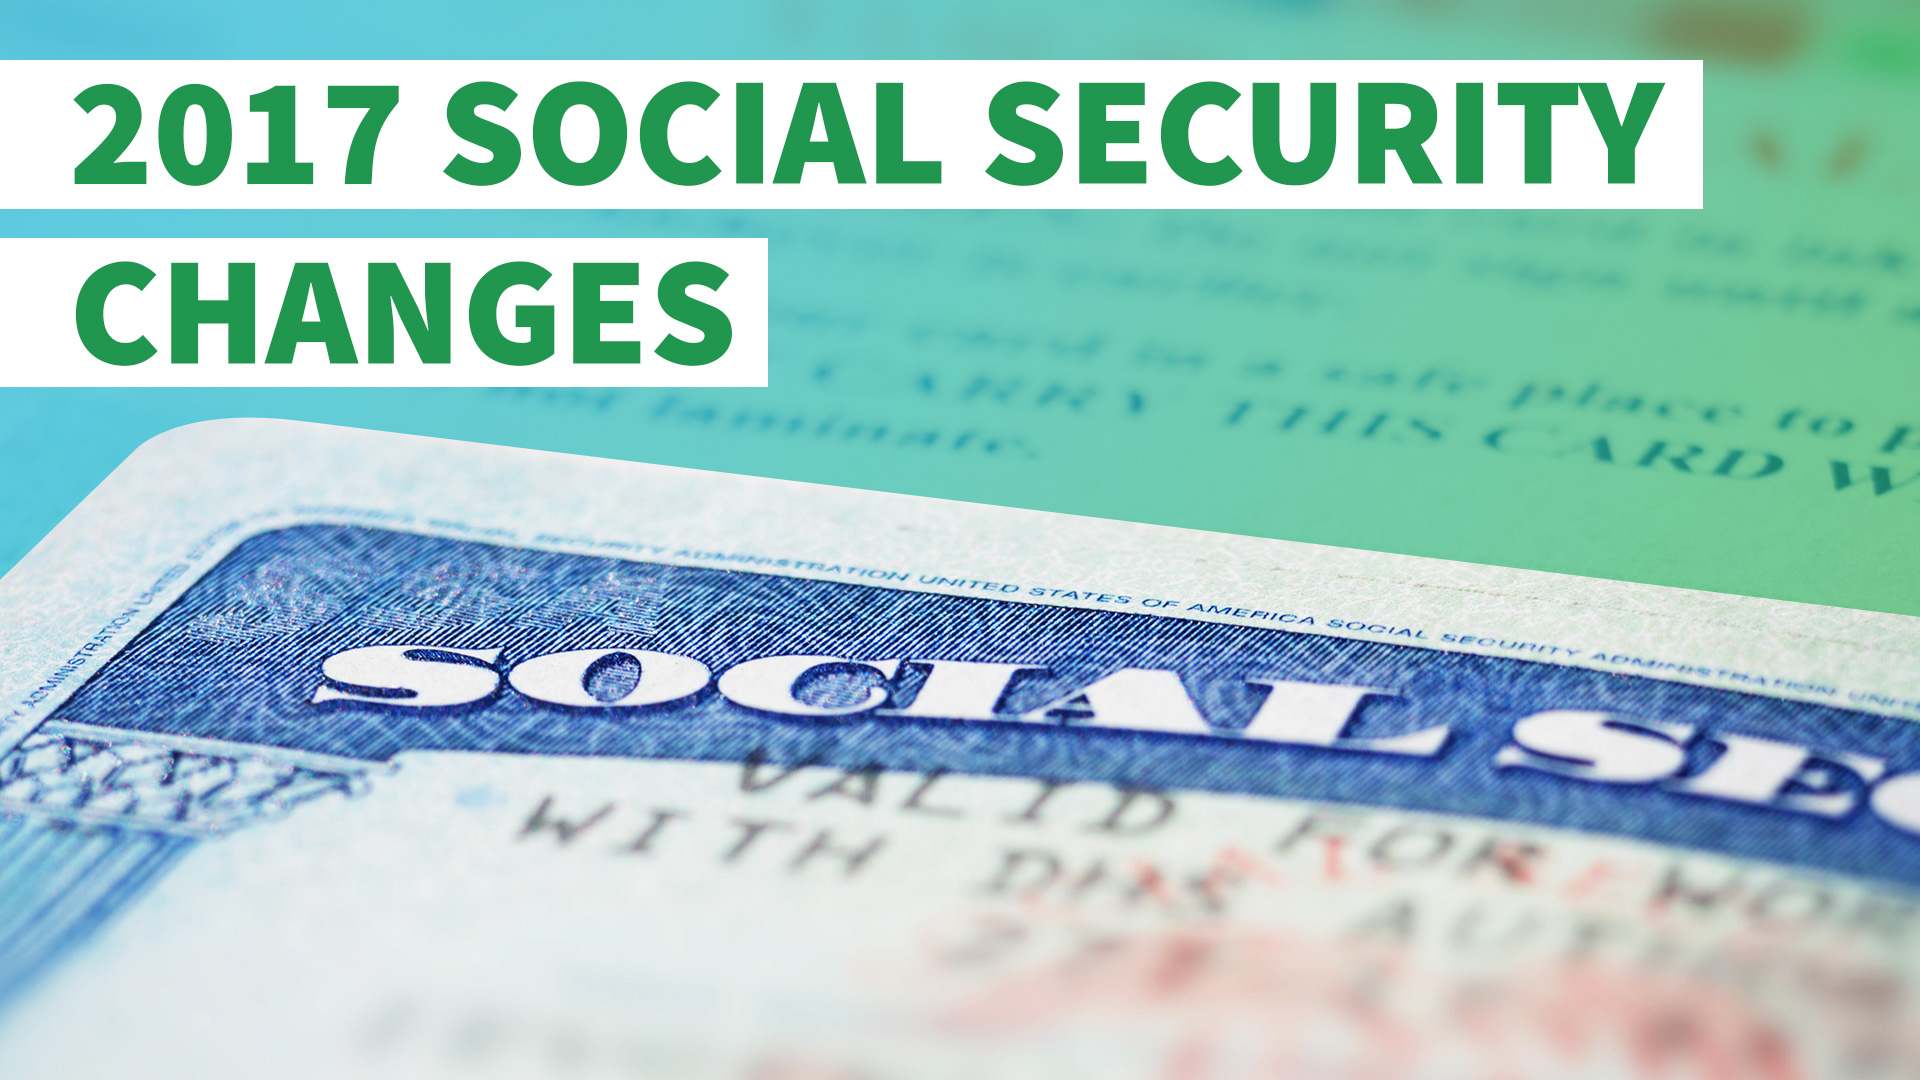 5 Social Security Changes to Watch for in